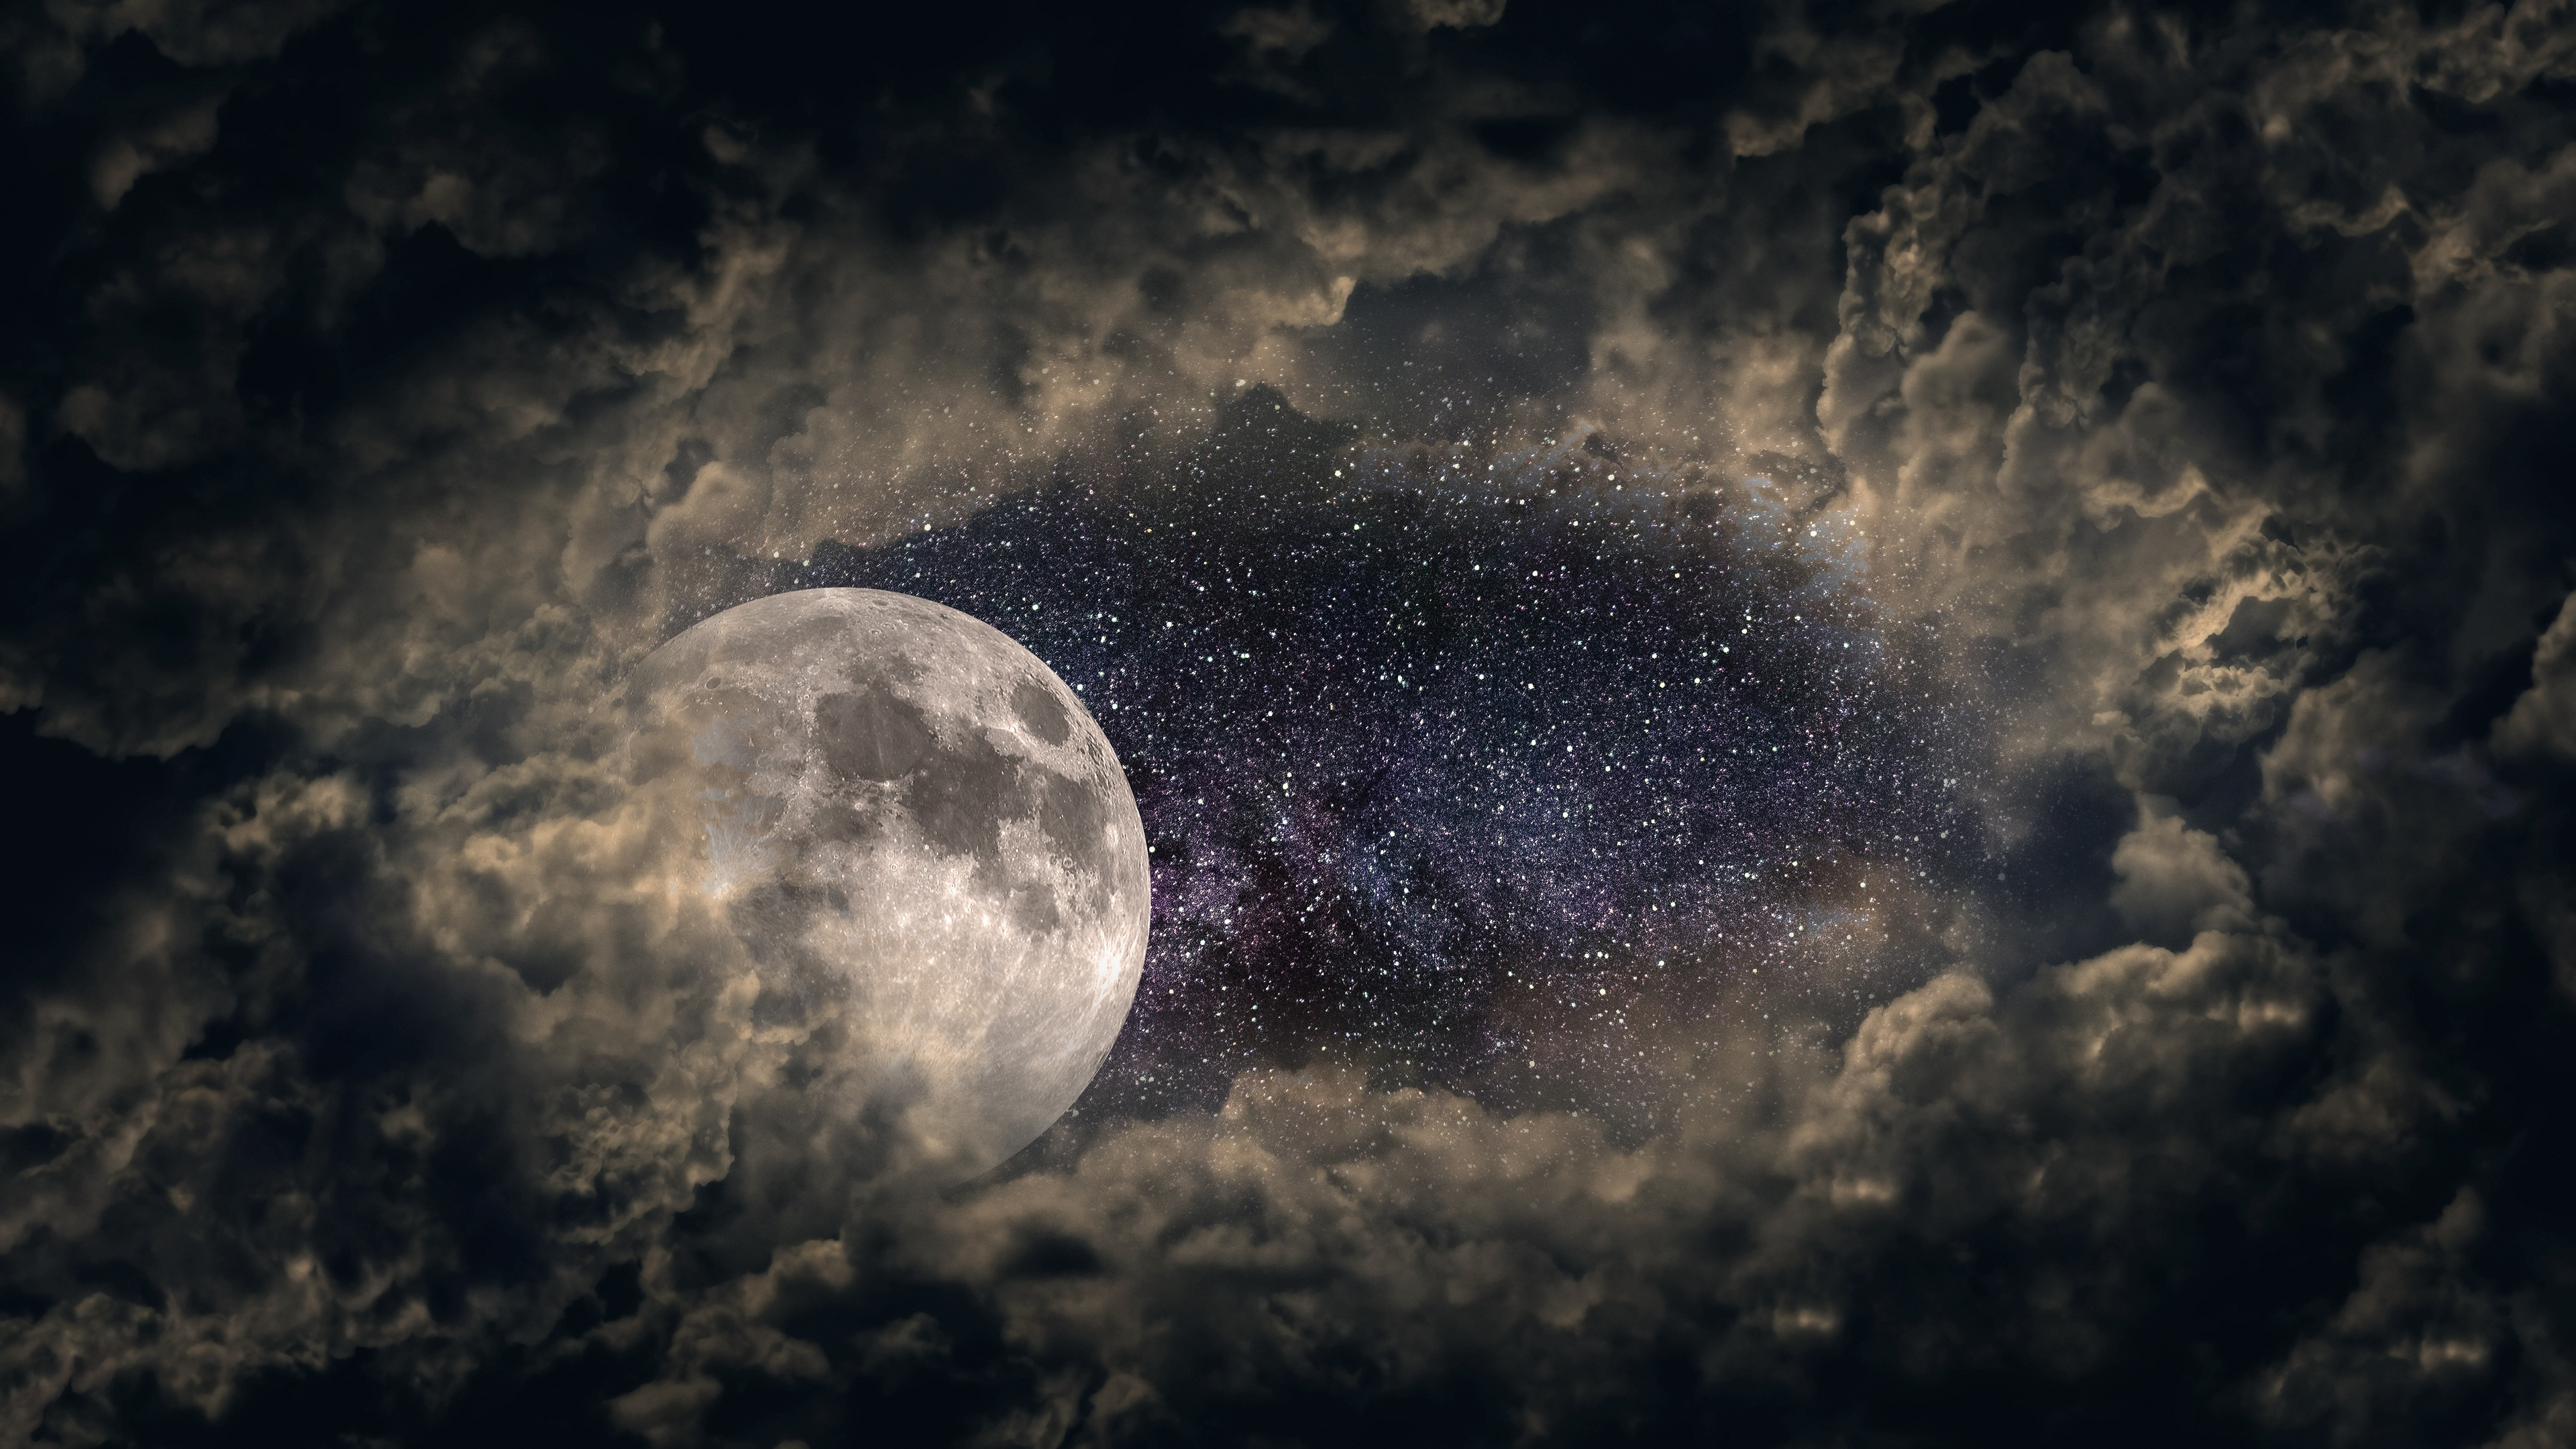 clouds moon universe stars 4k 1540139285 - Clouds Moon Universe Stars 4k - universe wallpapers, stars wallpapers, nature wallpapers, moon wallpapers, hd-wallpapers, clouds wallpapers, 5k wallpapers, 4k-wallpapers